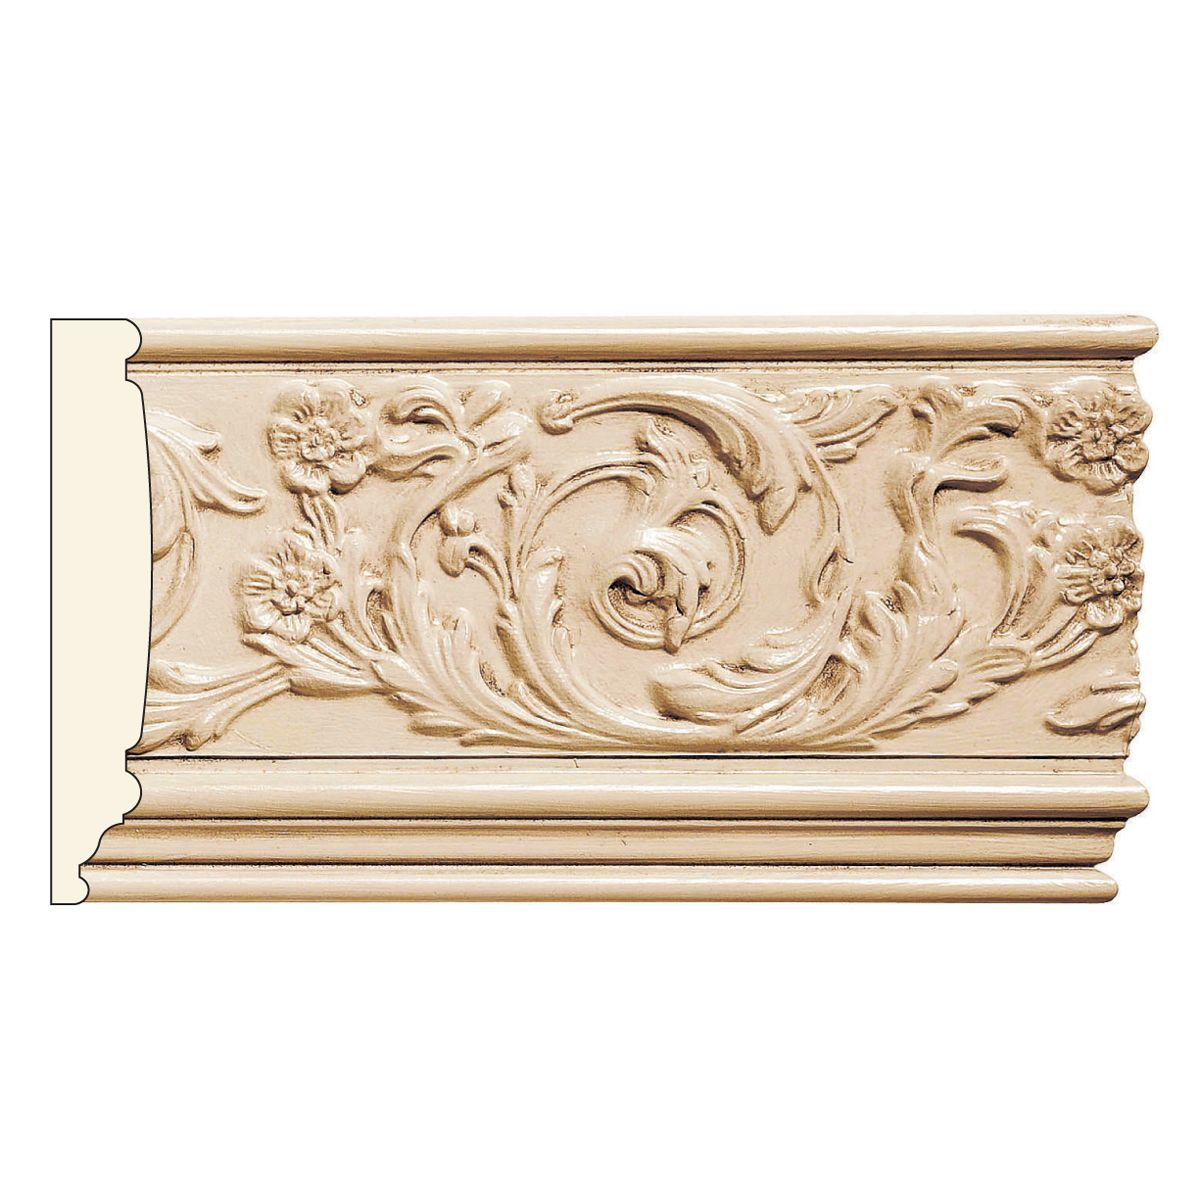 6 3 4 X 13 16 Rinceau Scrolls Repeats 13 5 8 Mt 7 8 White River Moldings And Trim Love Design White River